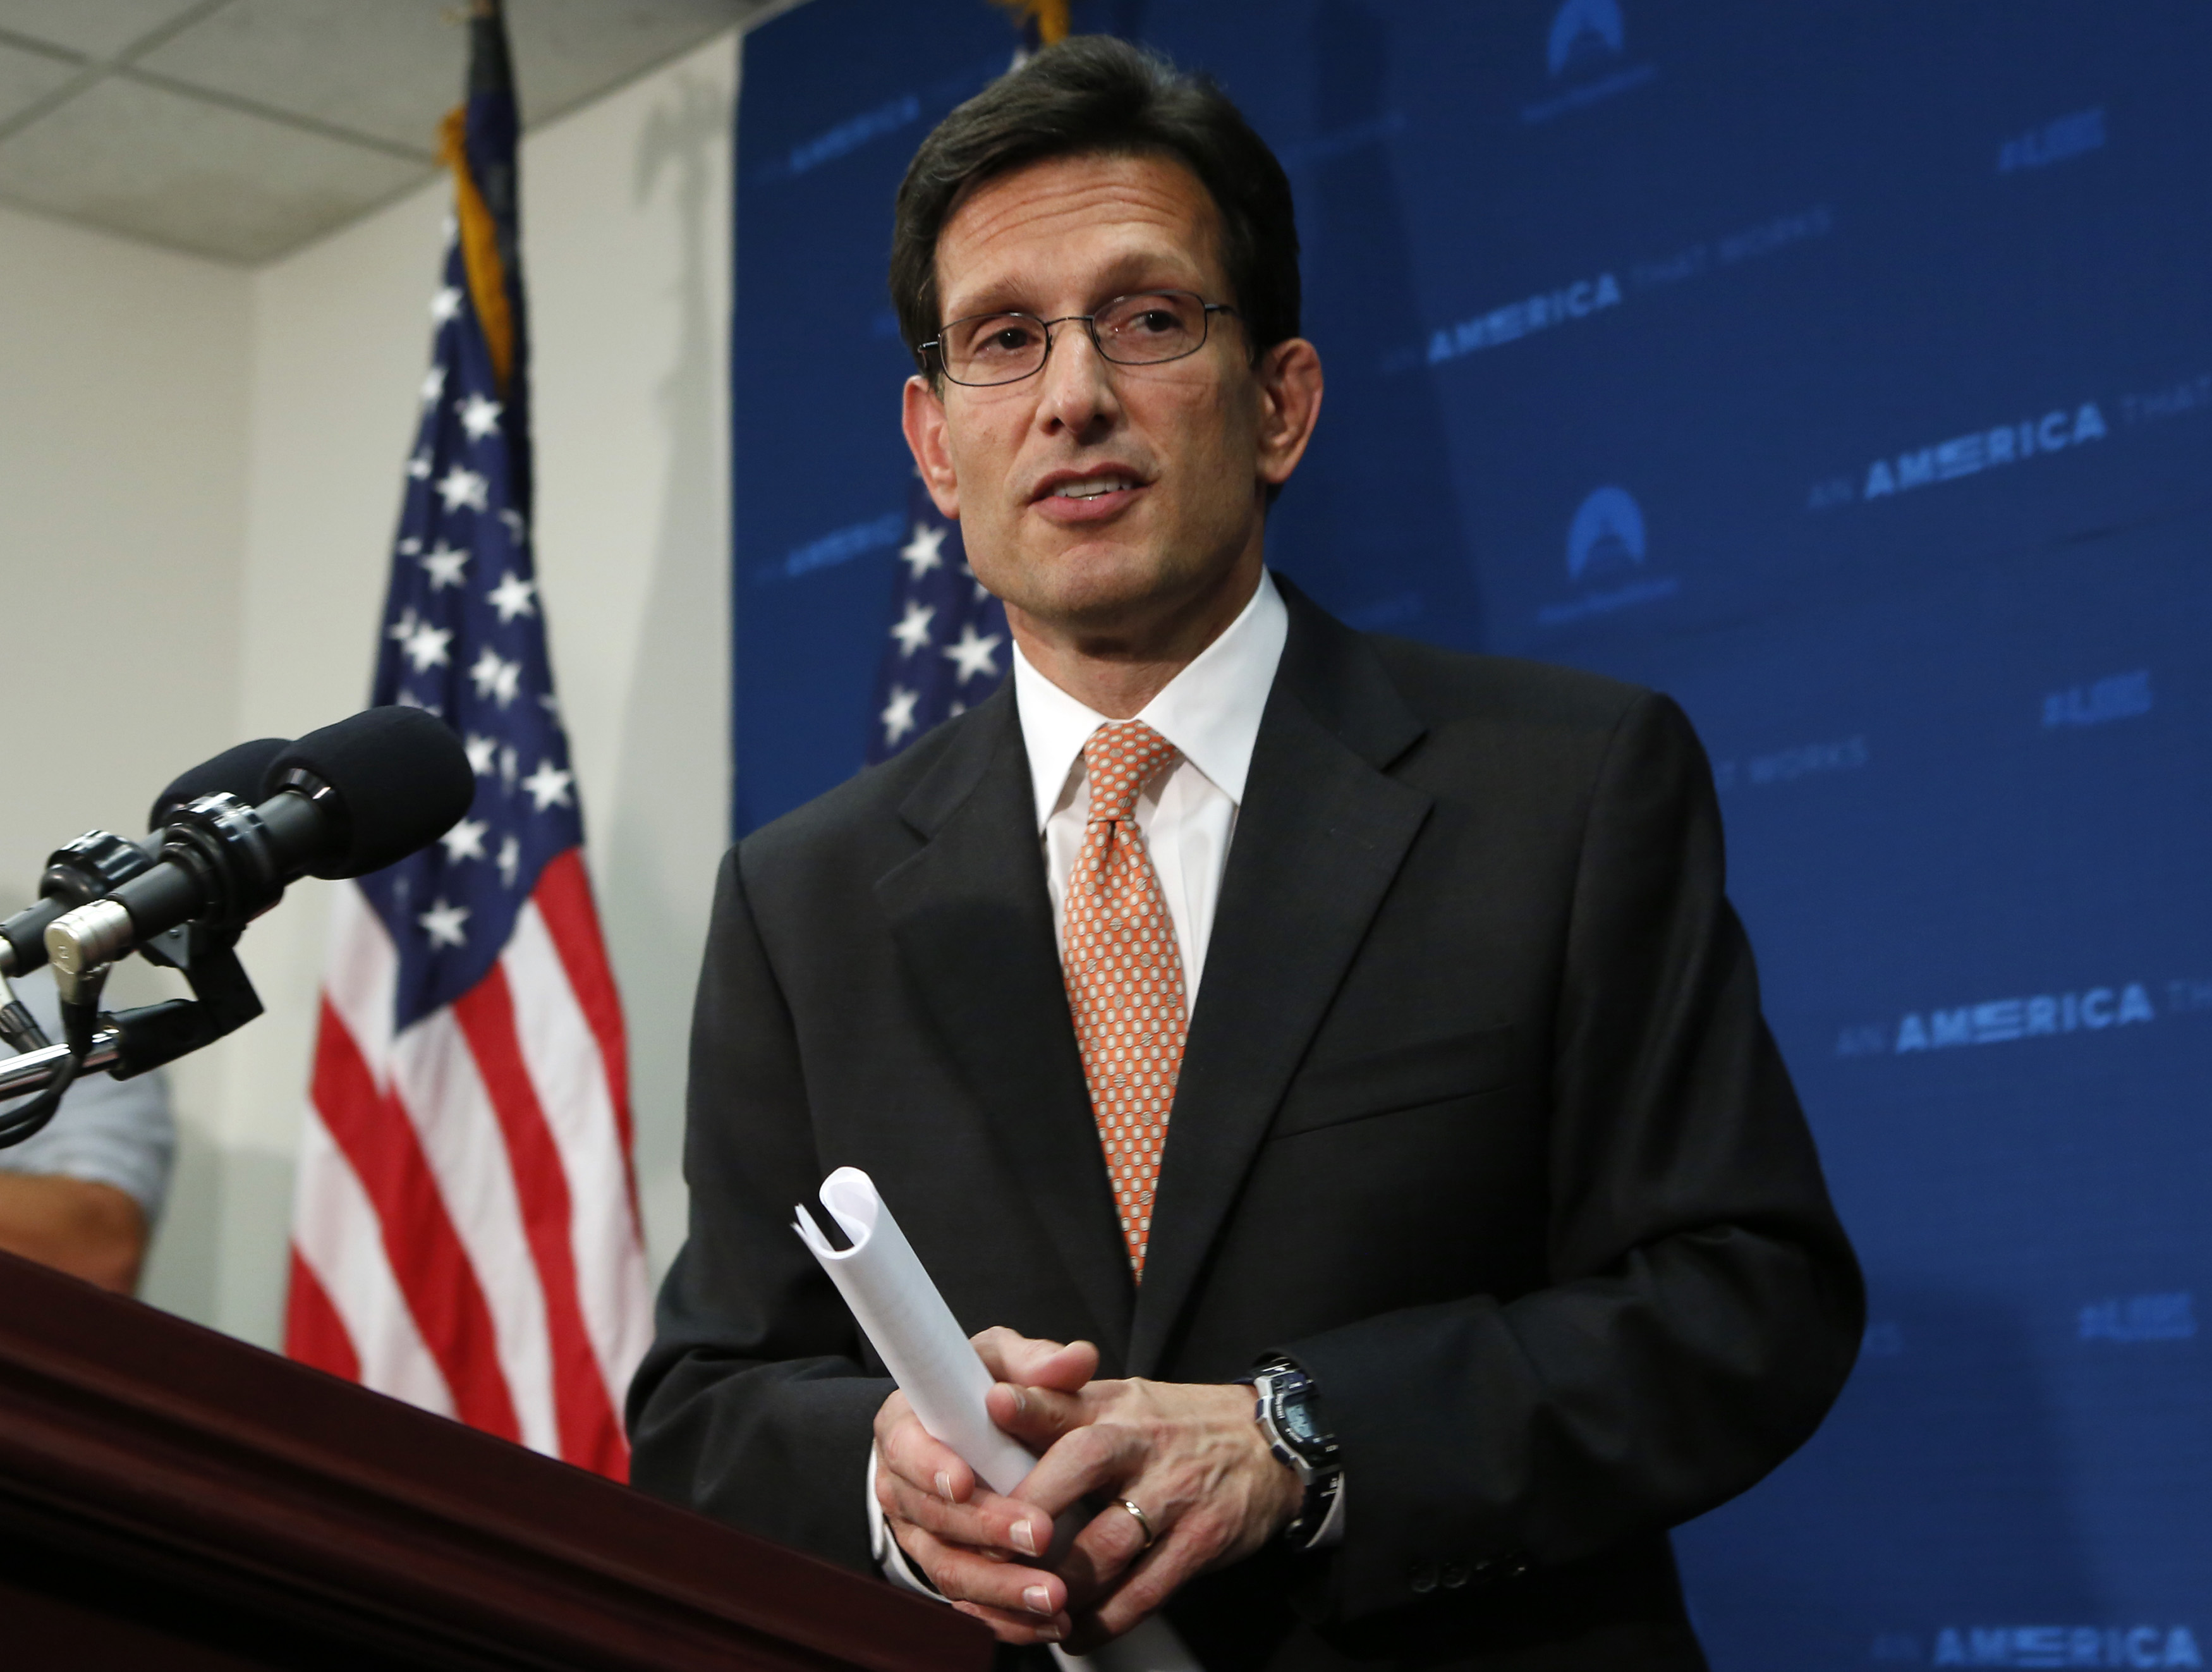 U.S. House Majority Leader Eric Cantor (R-VA) leaves after a news conference at the U.S. Capitol in Washington June 11, 2014